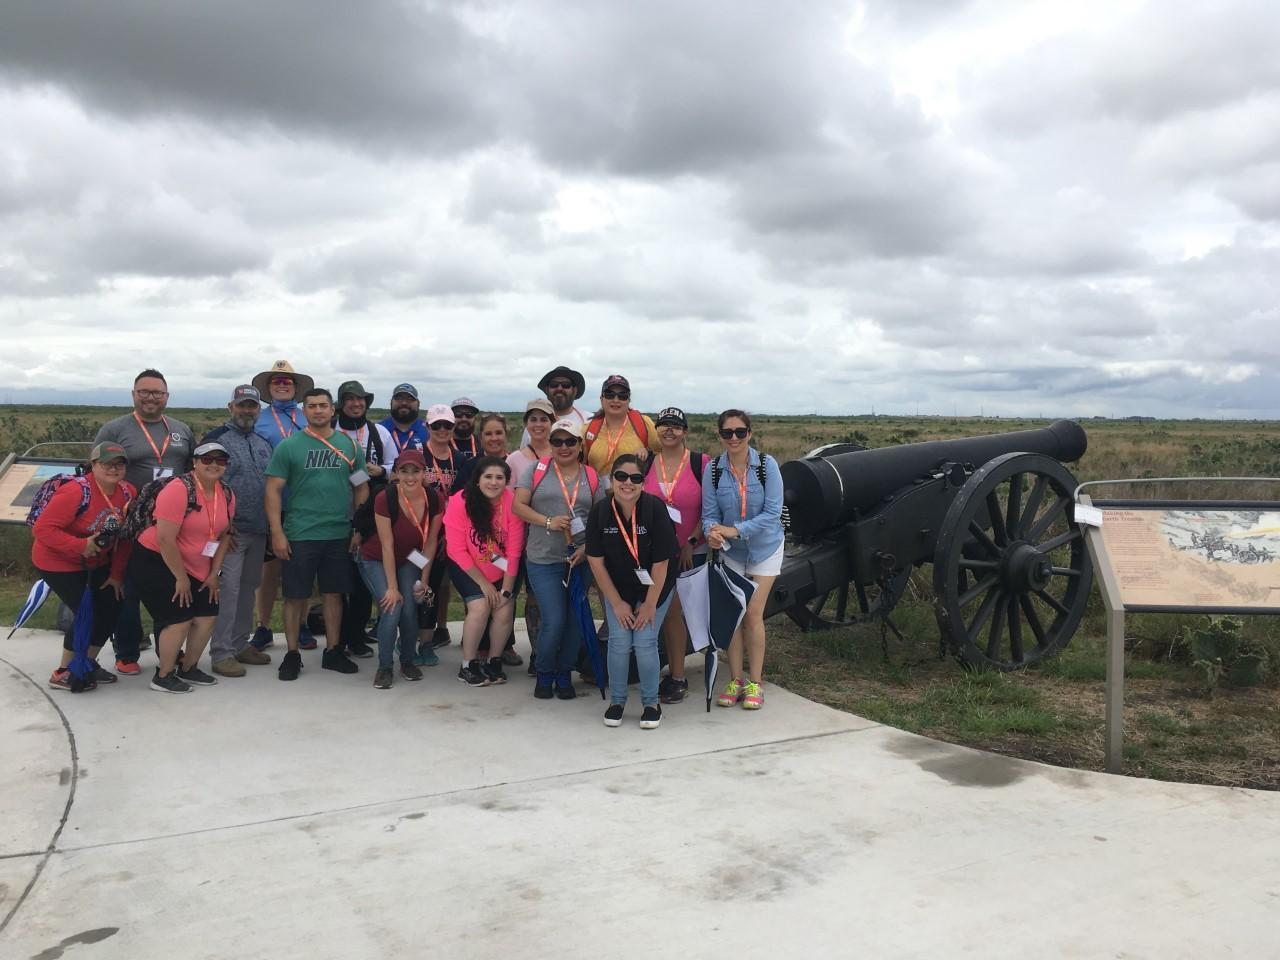 Group photo in front of cannons